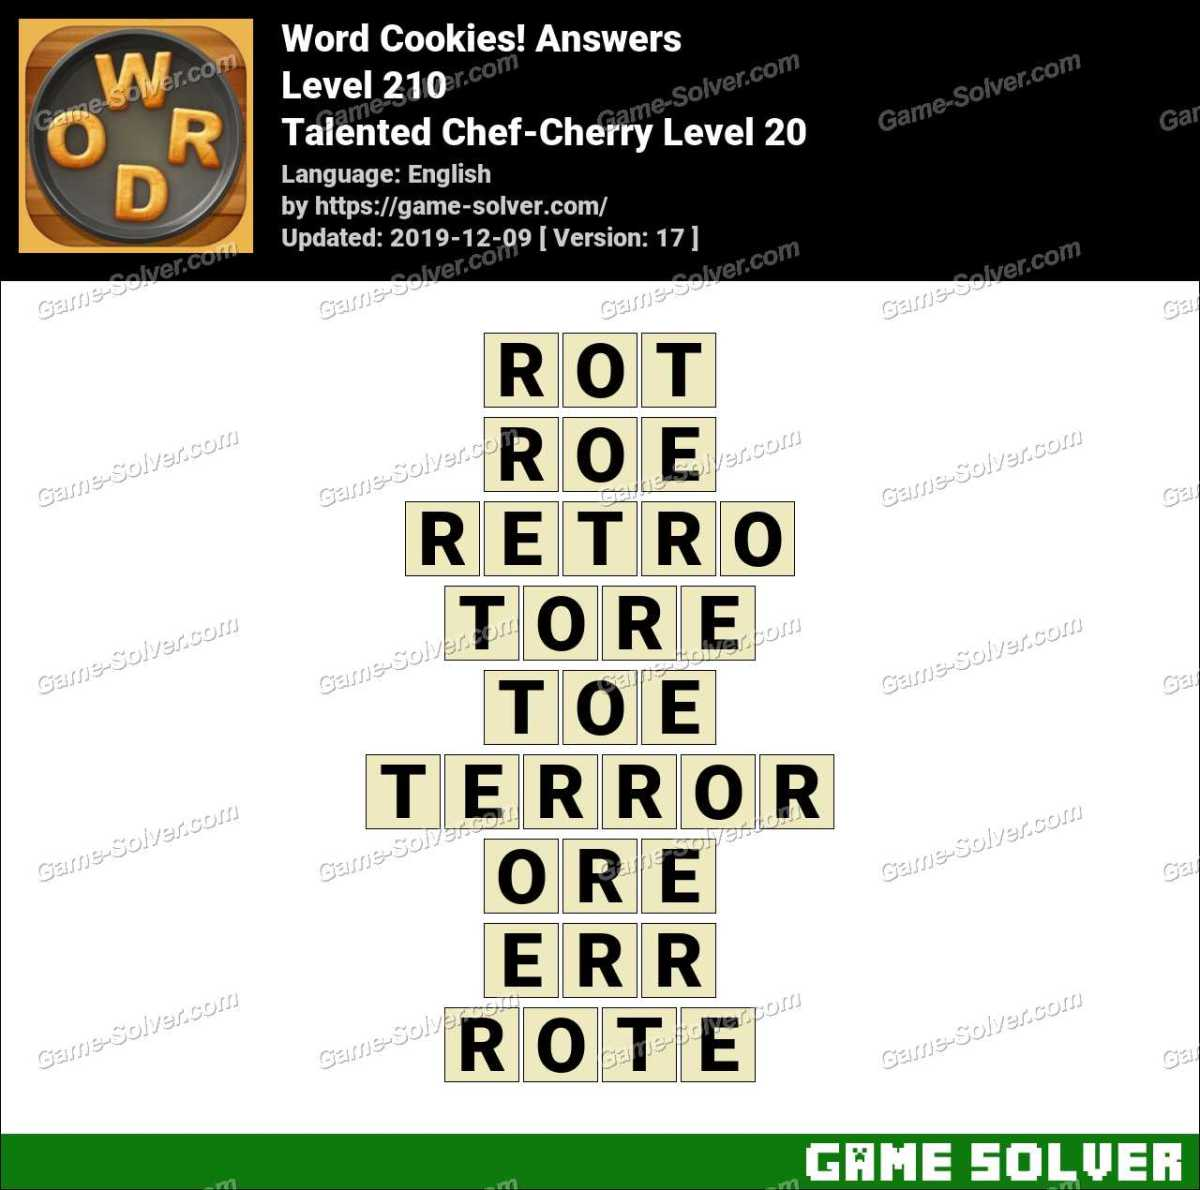 Word Cookies Talented Chef-Cherry Level 20 Answers